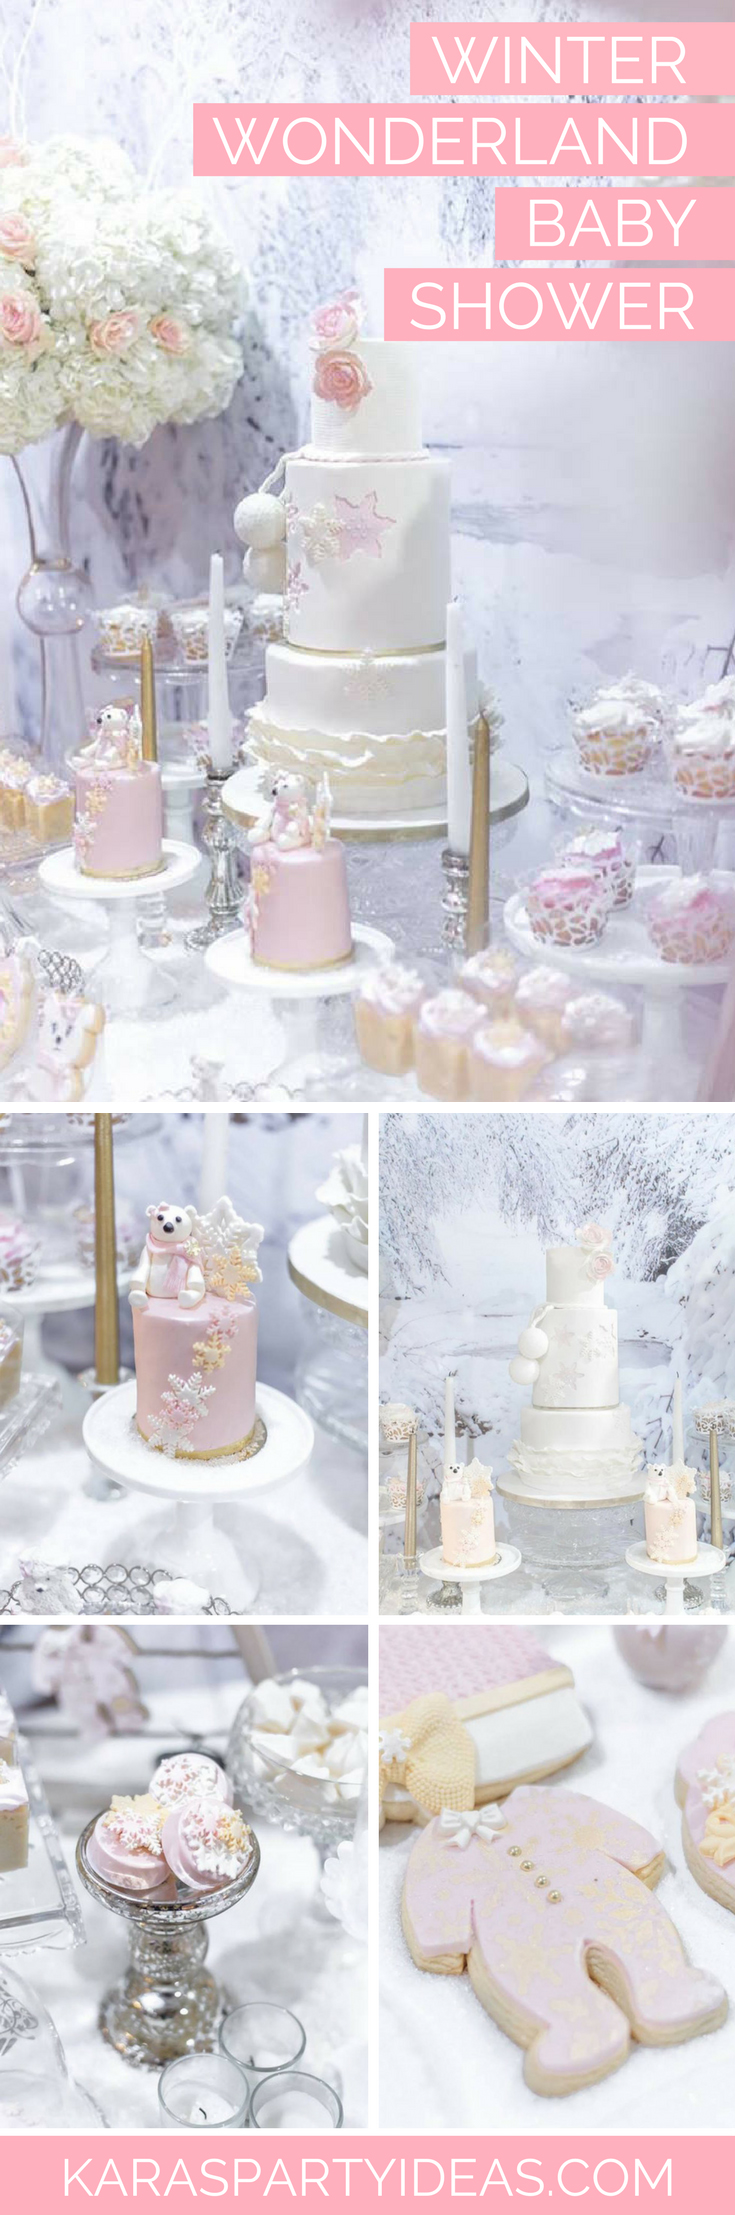 Winter Wonderland Baby Shower via Kara's Party Ideas - KarasPartyIdeas.com